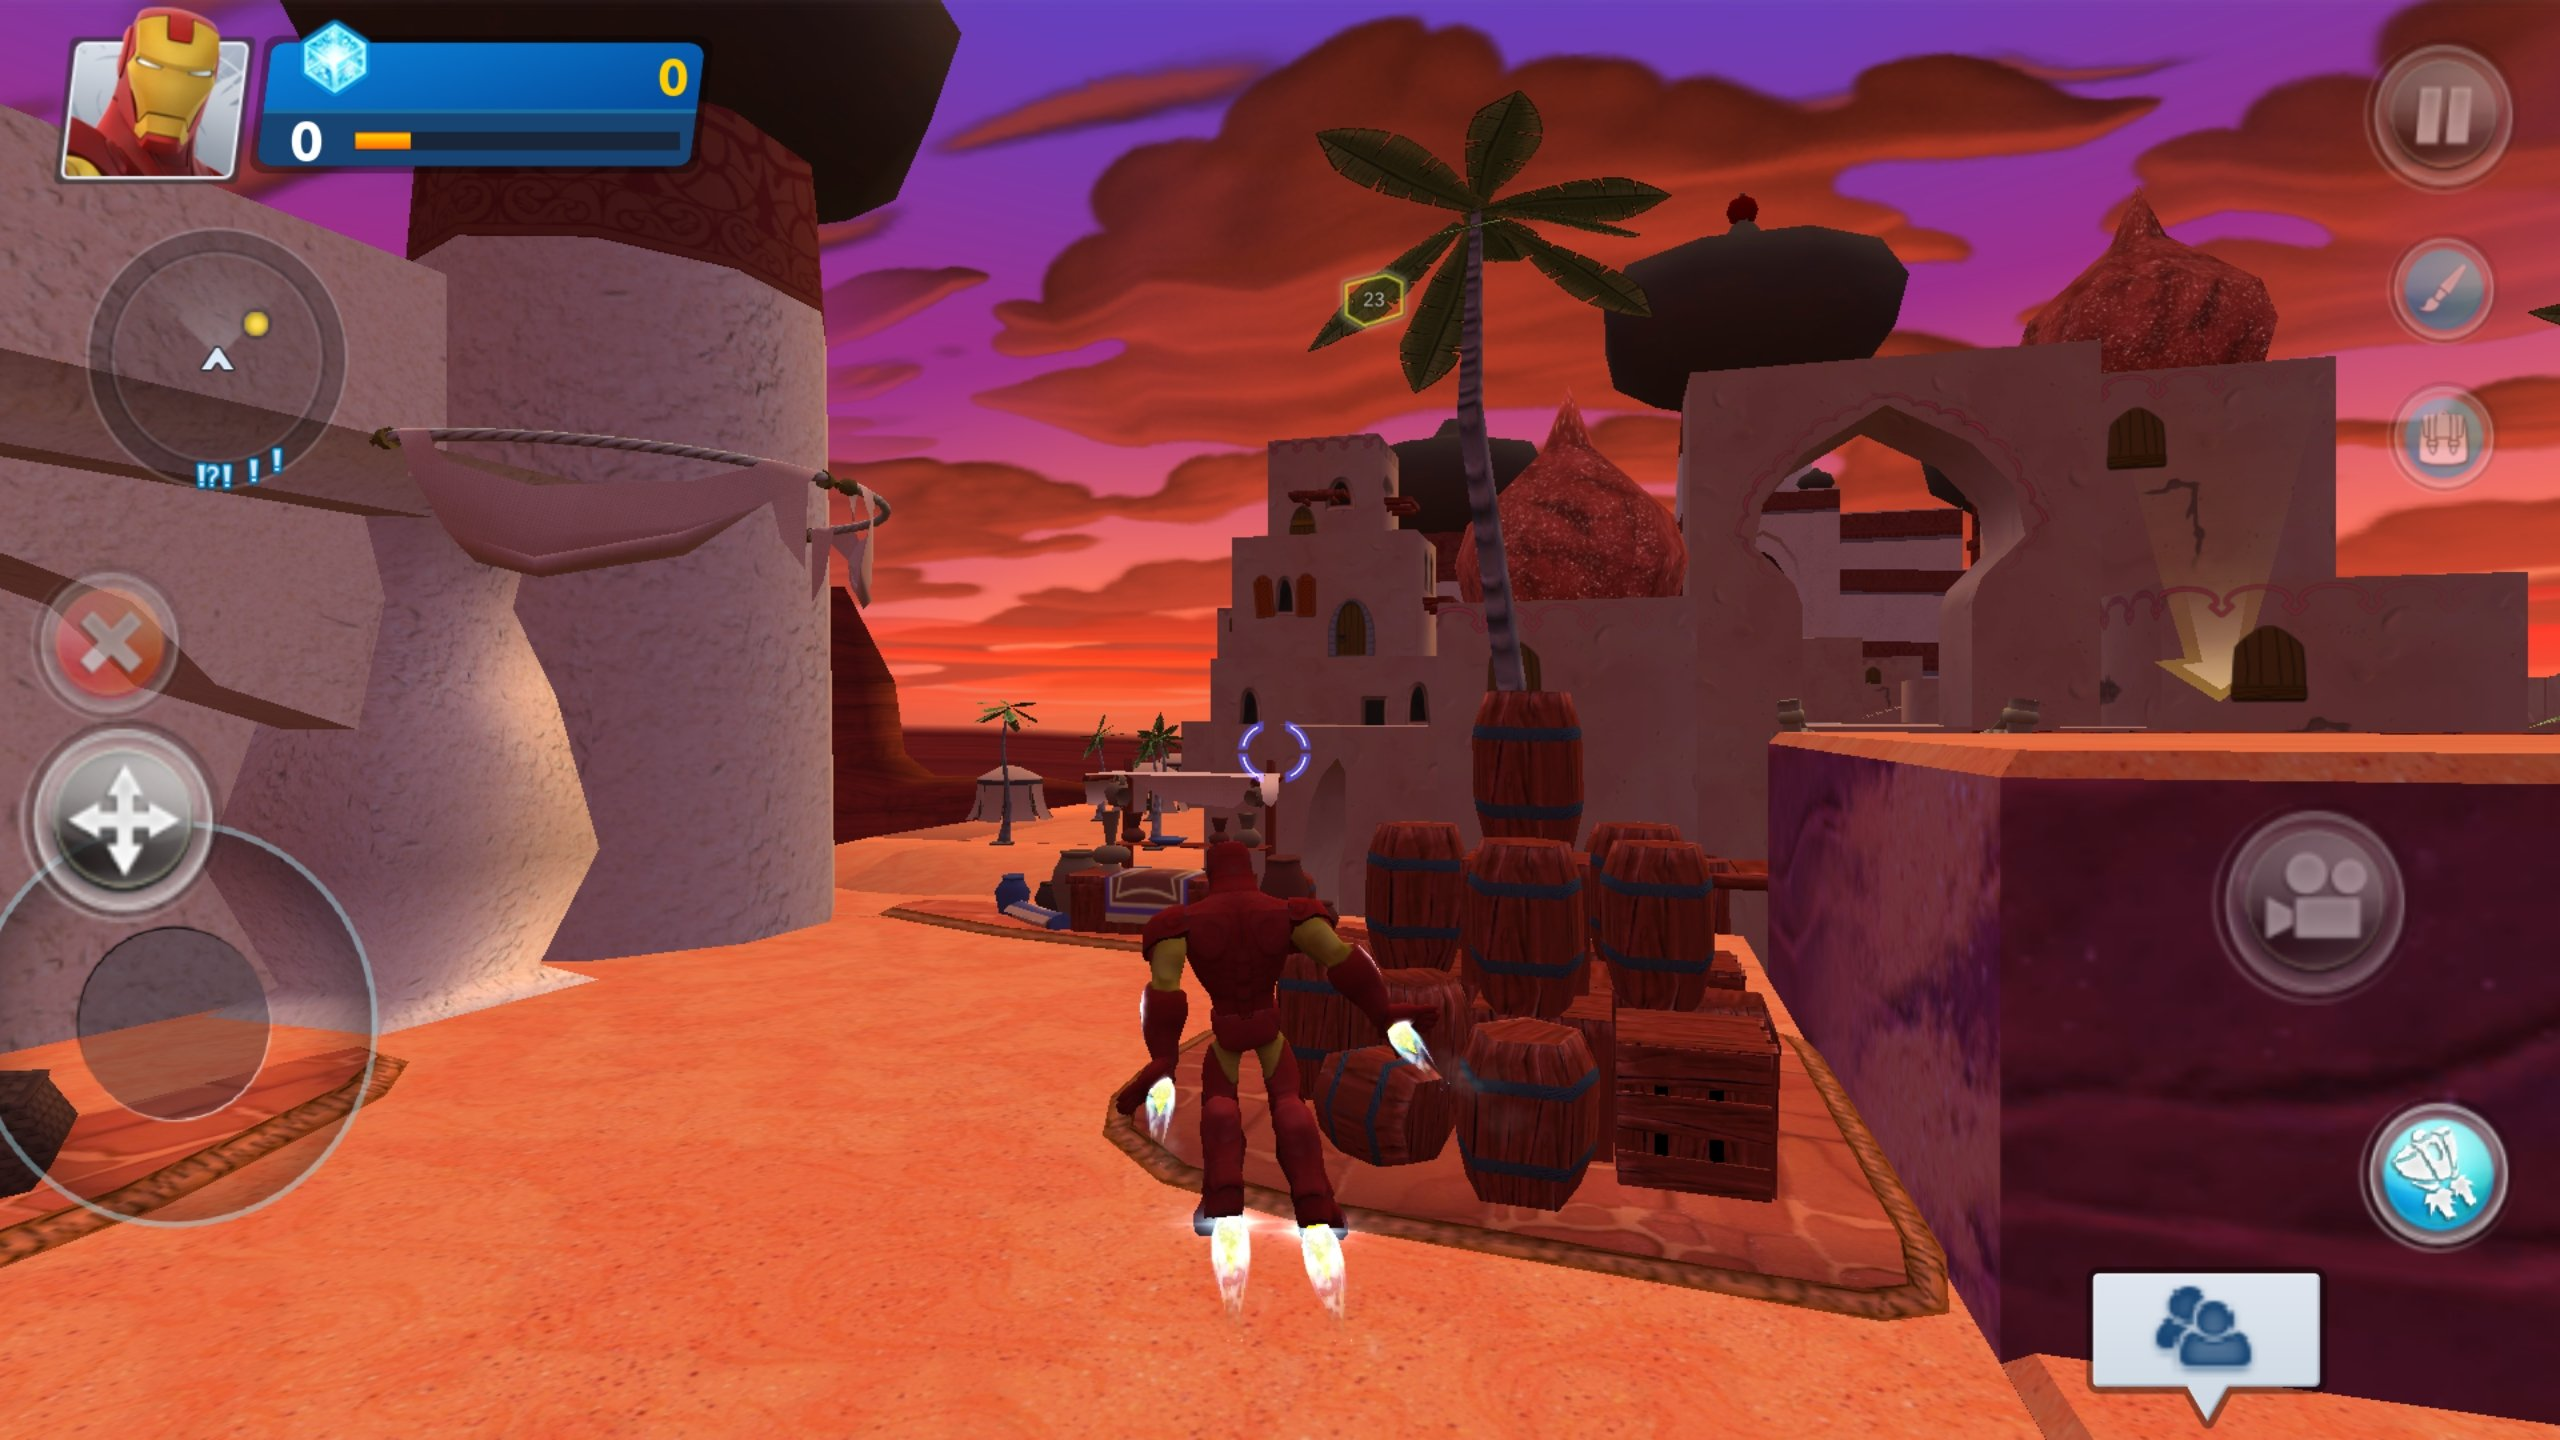 disney infinity toy box 2.0 free download for pc